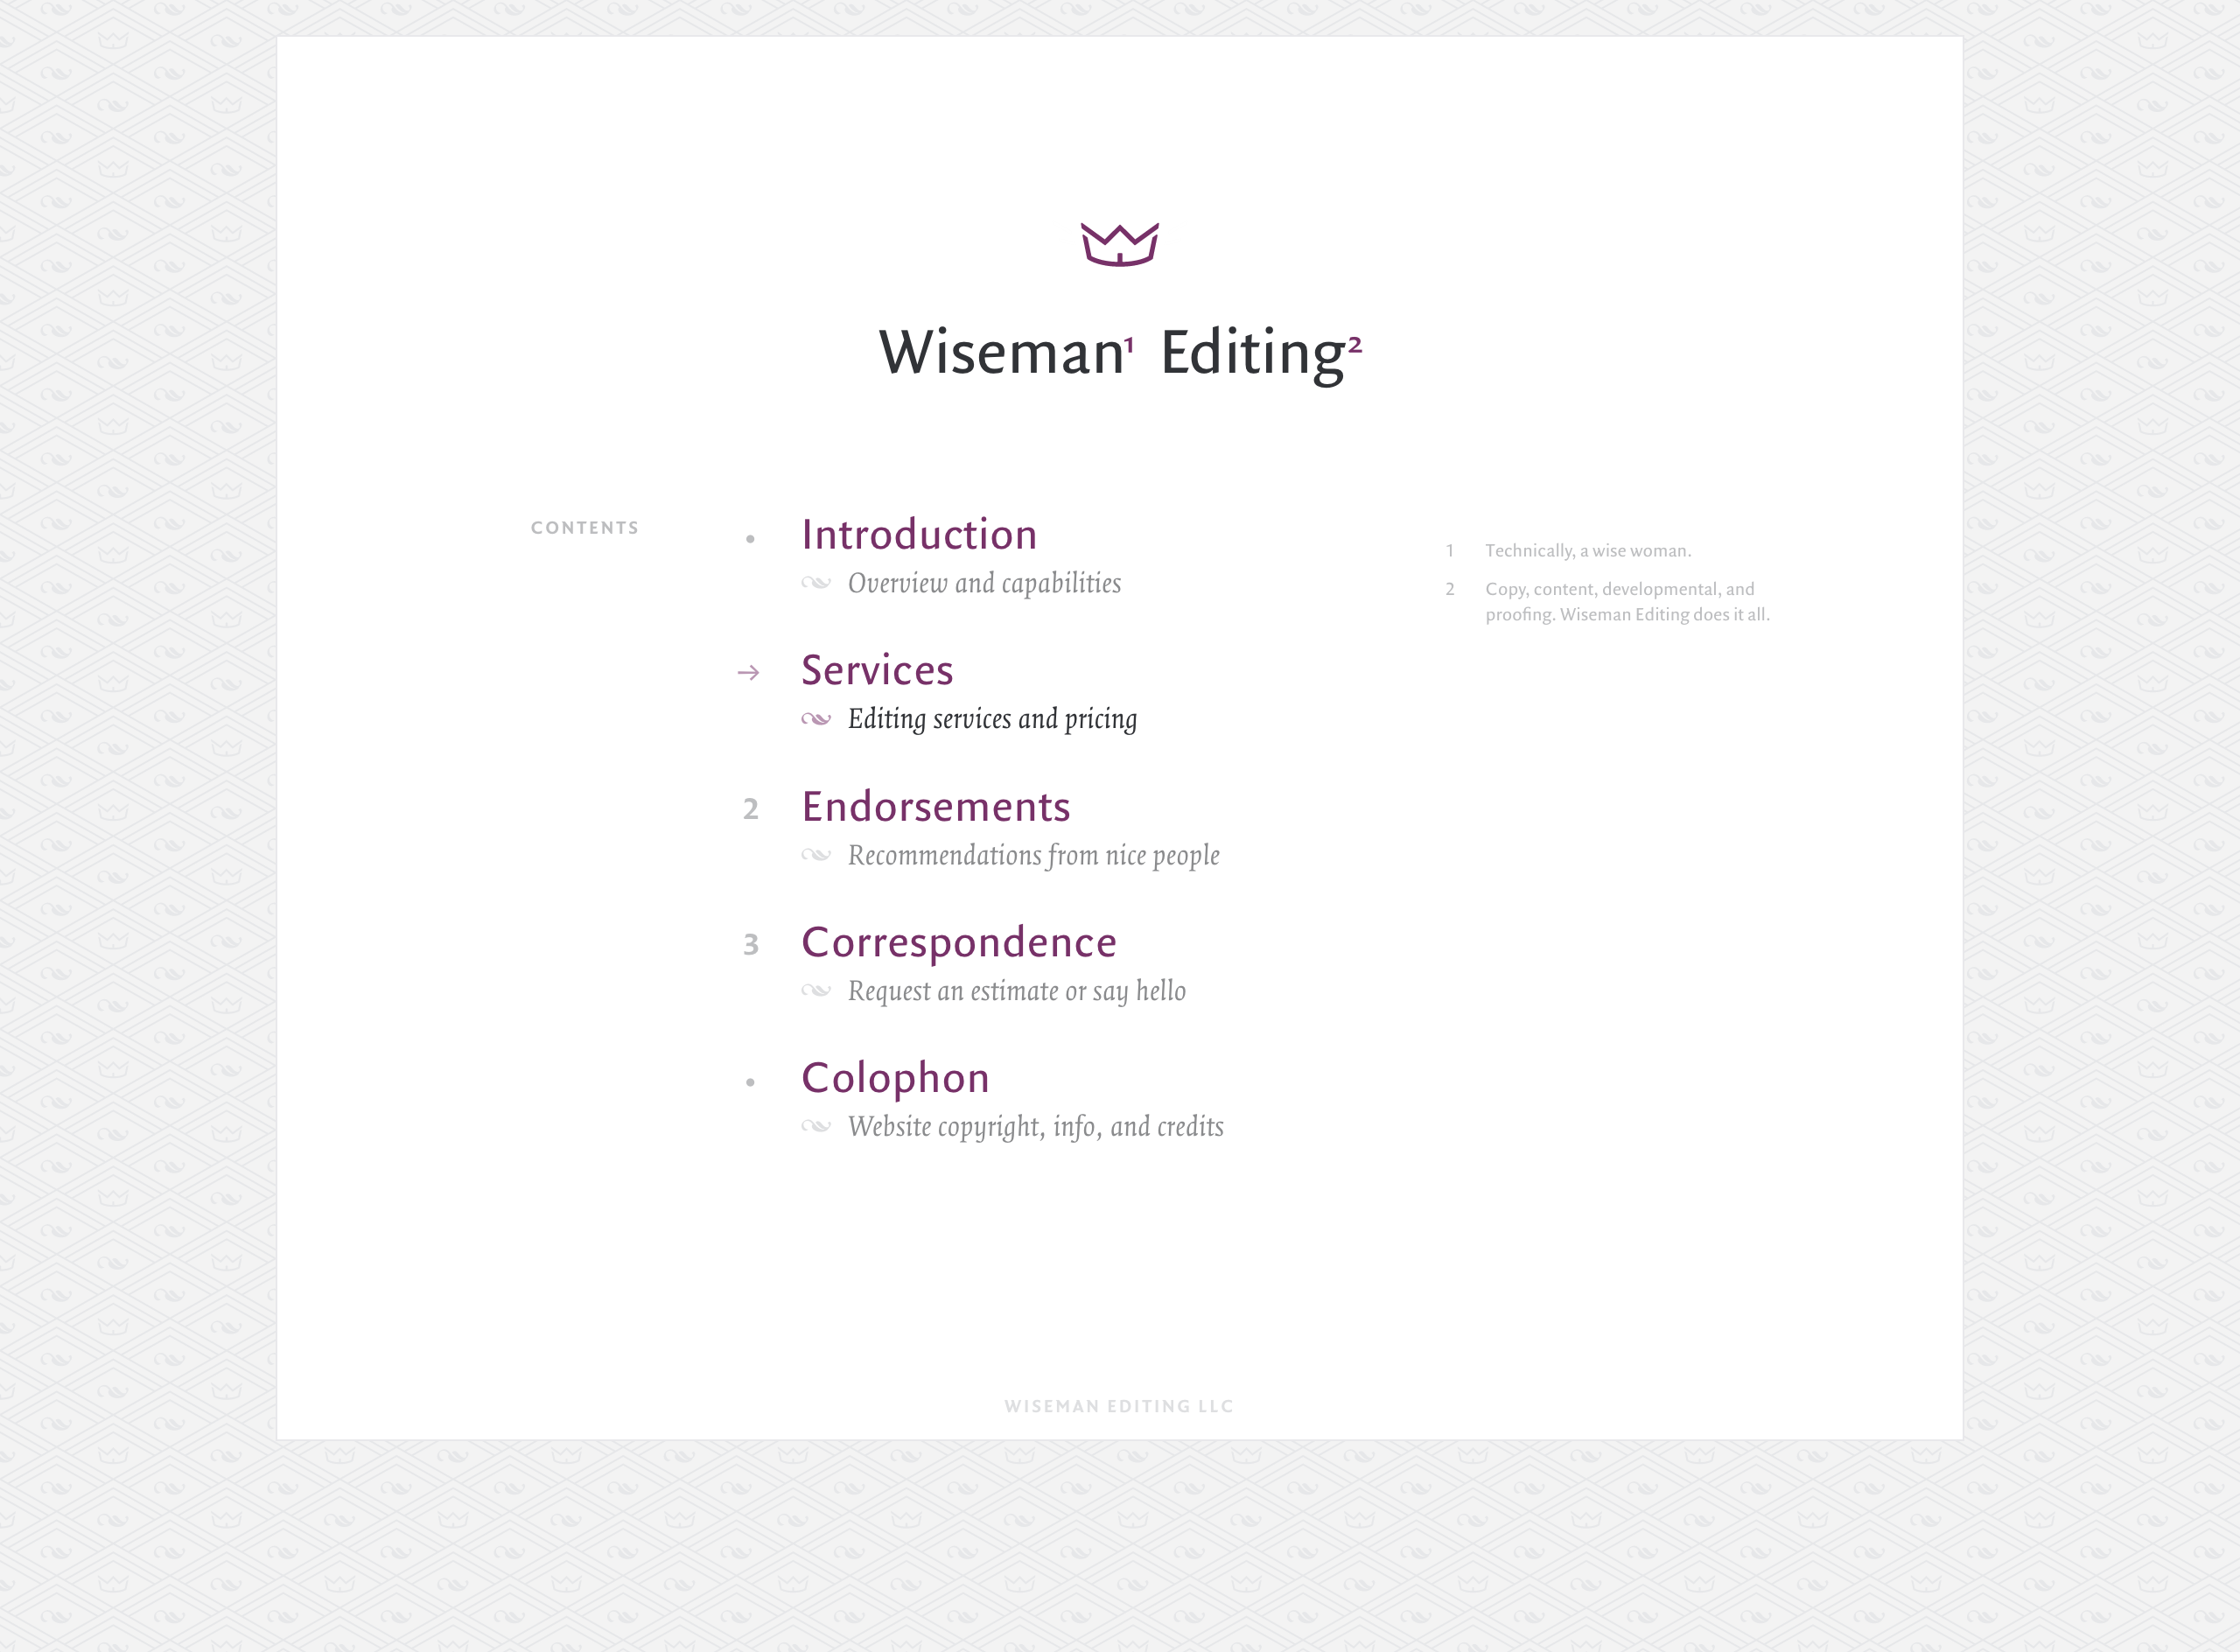 Wiseman Editing - Website Table of Contents